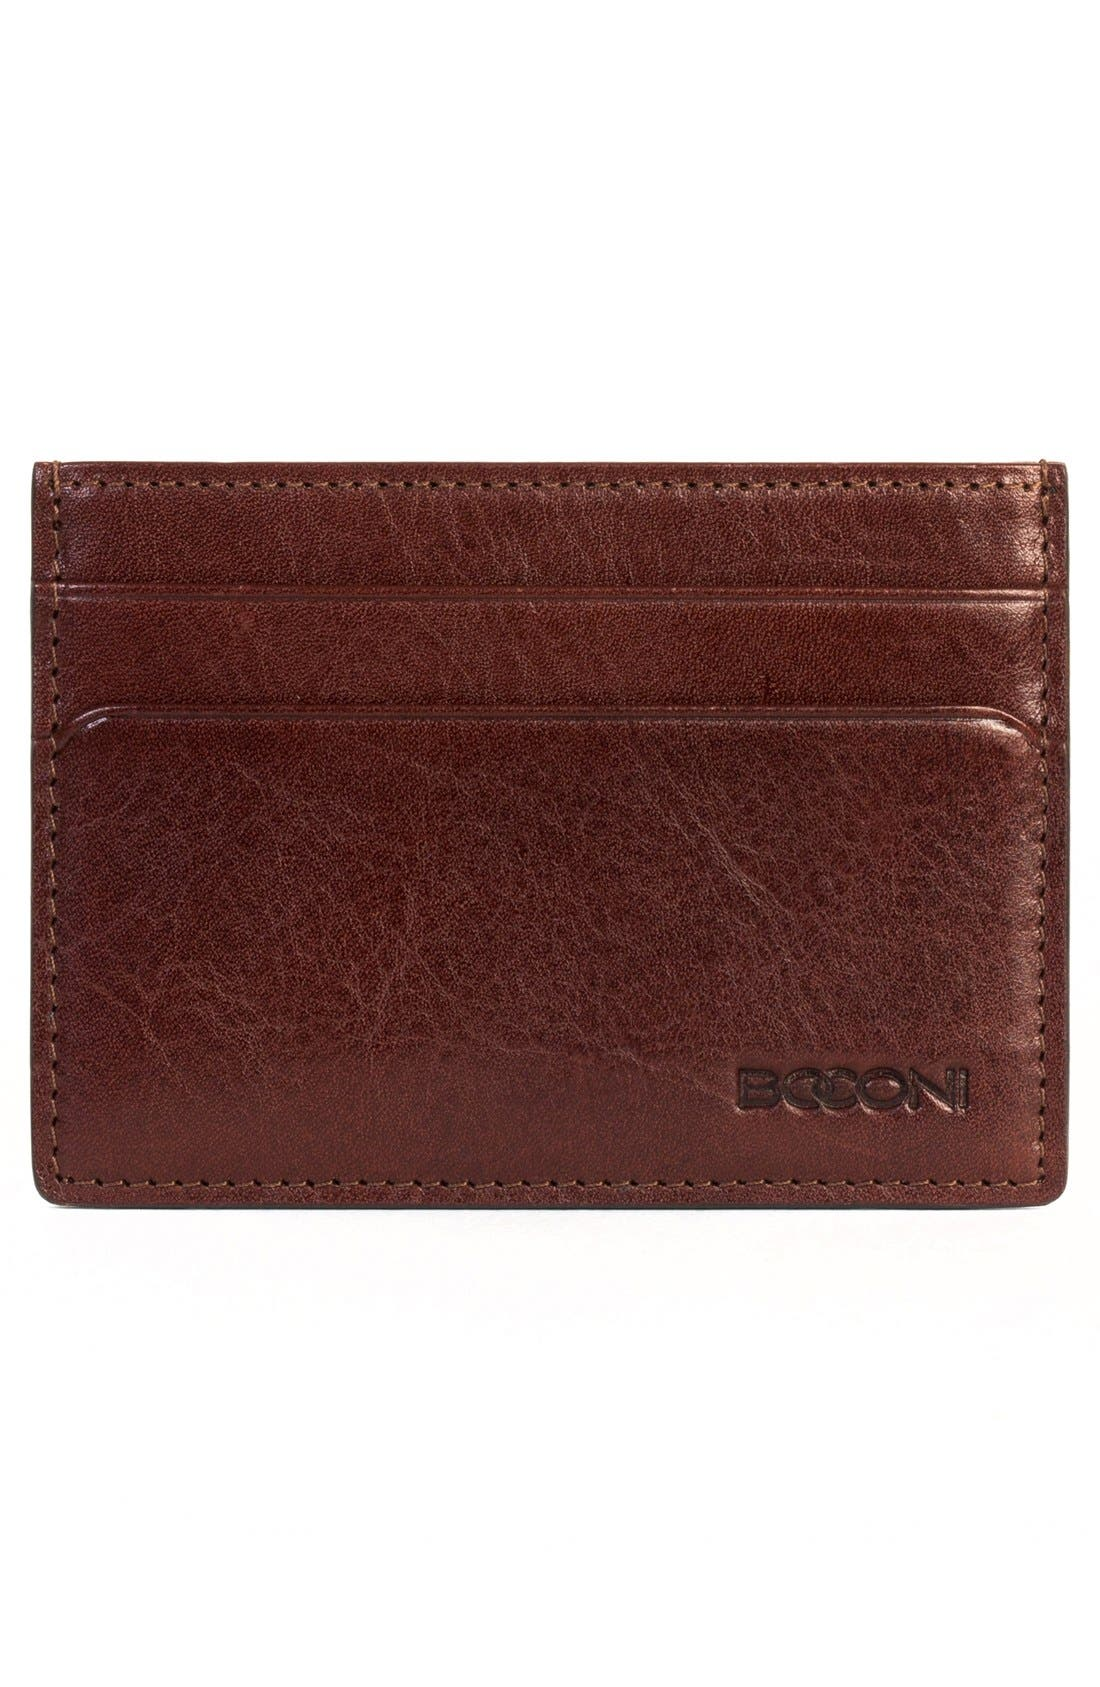 'Becker' Leather Card Case,                             Alternate thumbnail 2, color,                             WHISKEY